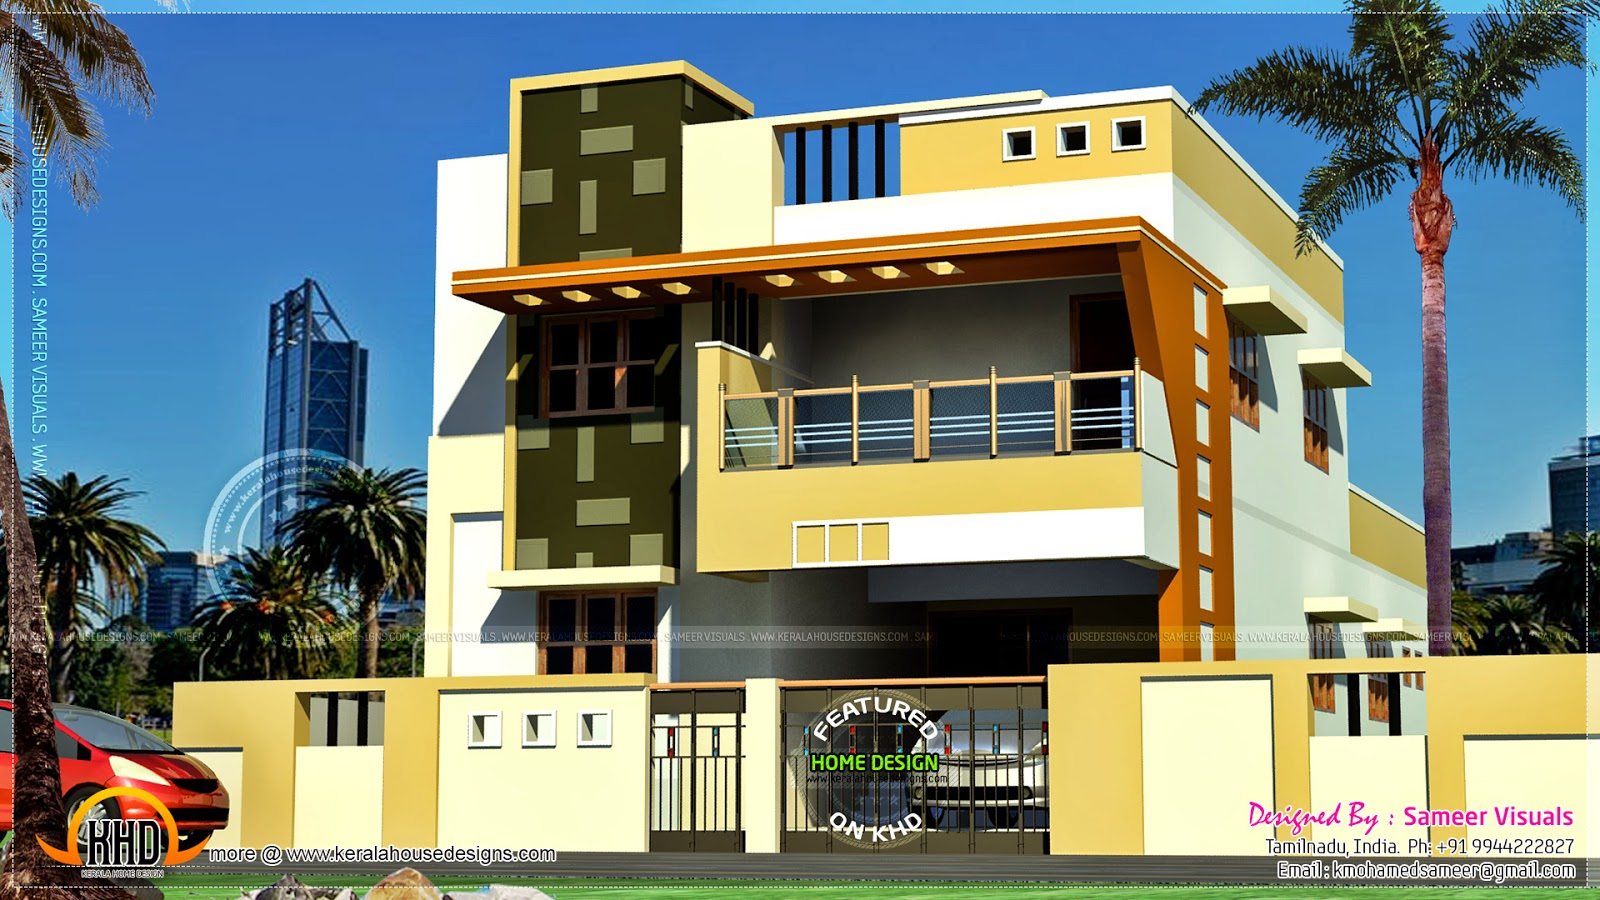 Modern South Indian house design | Home Kerala Plans